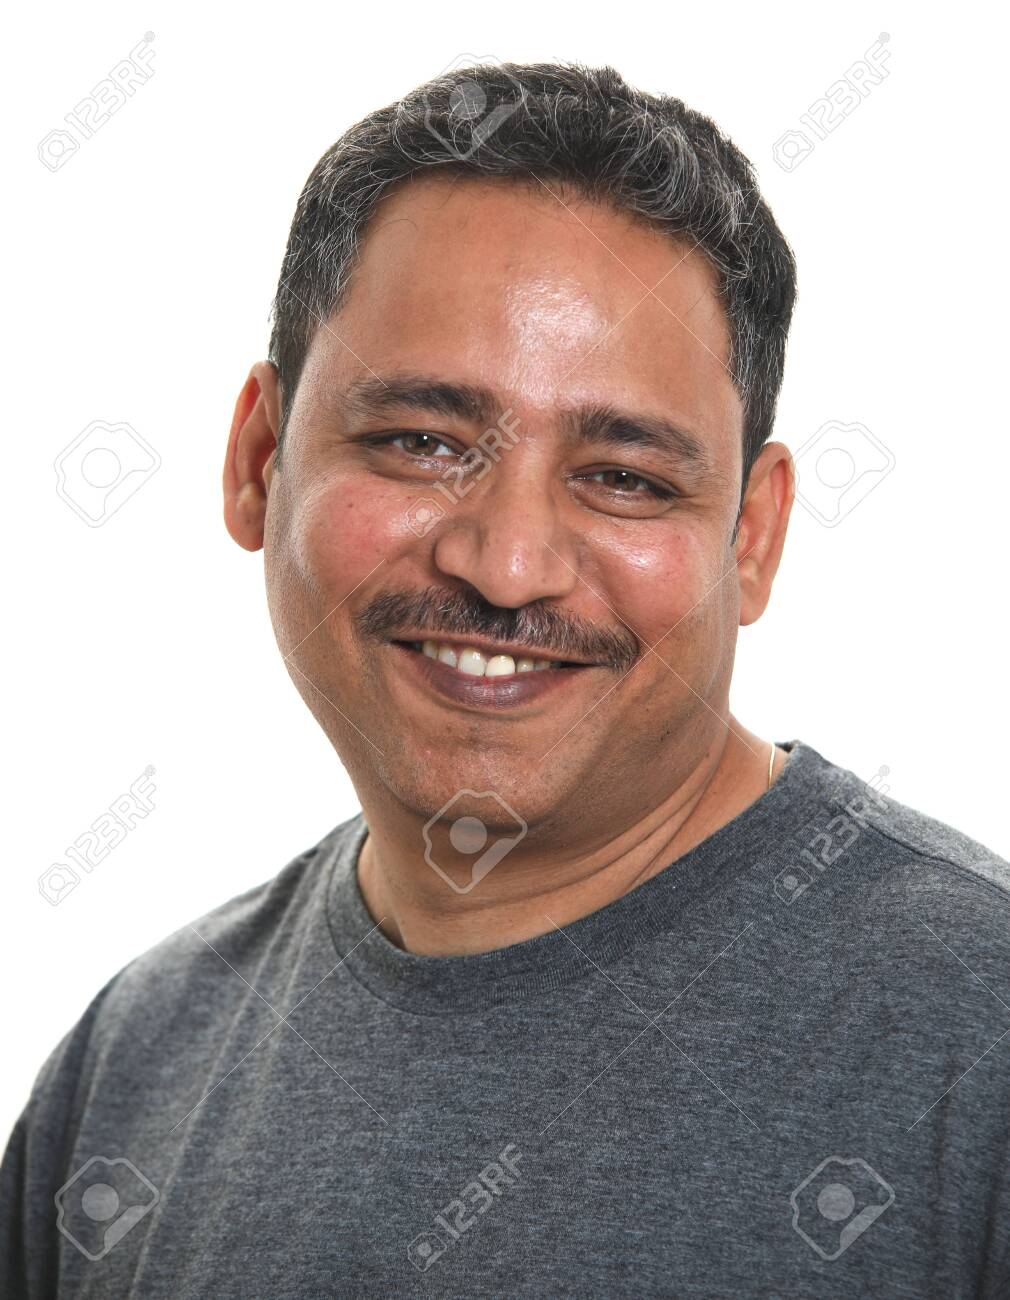 A smiling Indian man in a studio against a white background - 143874999